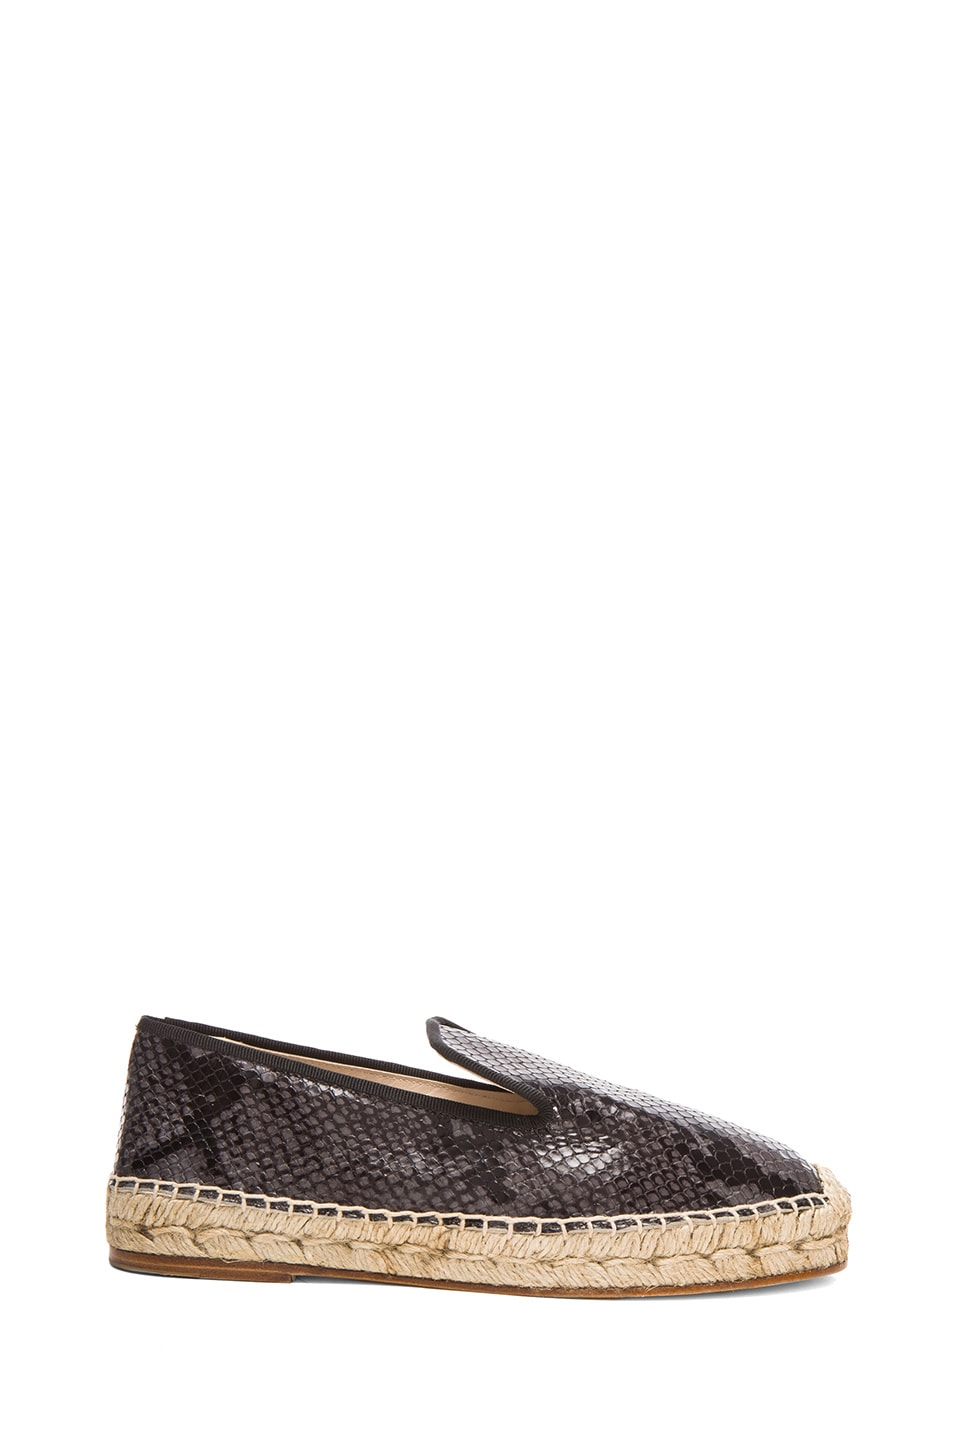 Image 1 of elysewalker los angeles Python Printed Leather Espadrilles in Grey